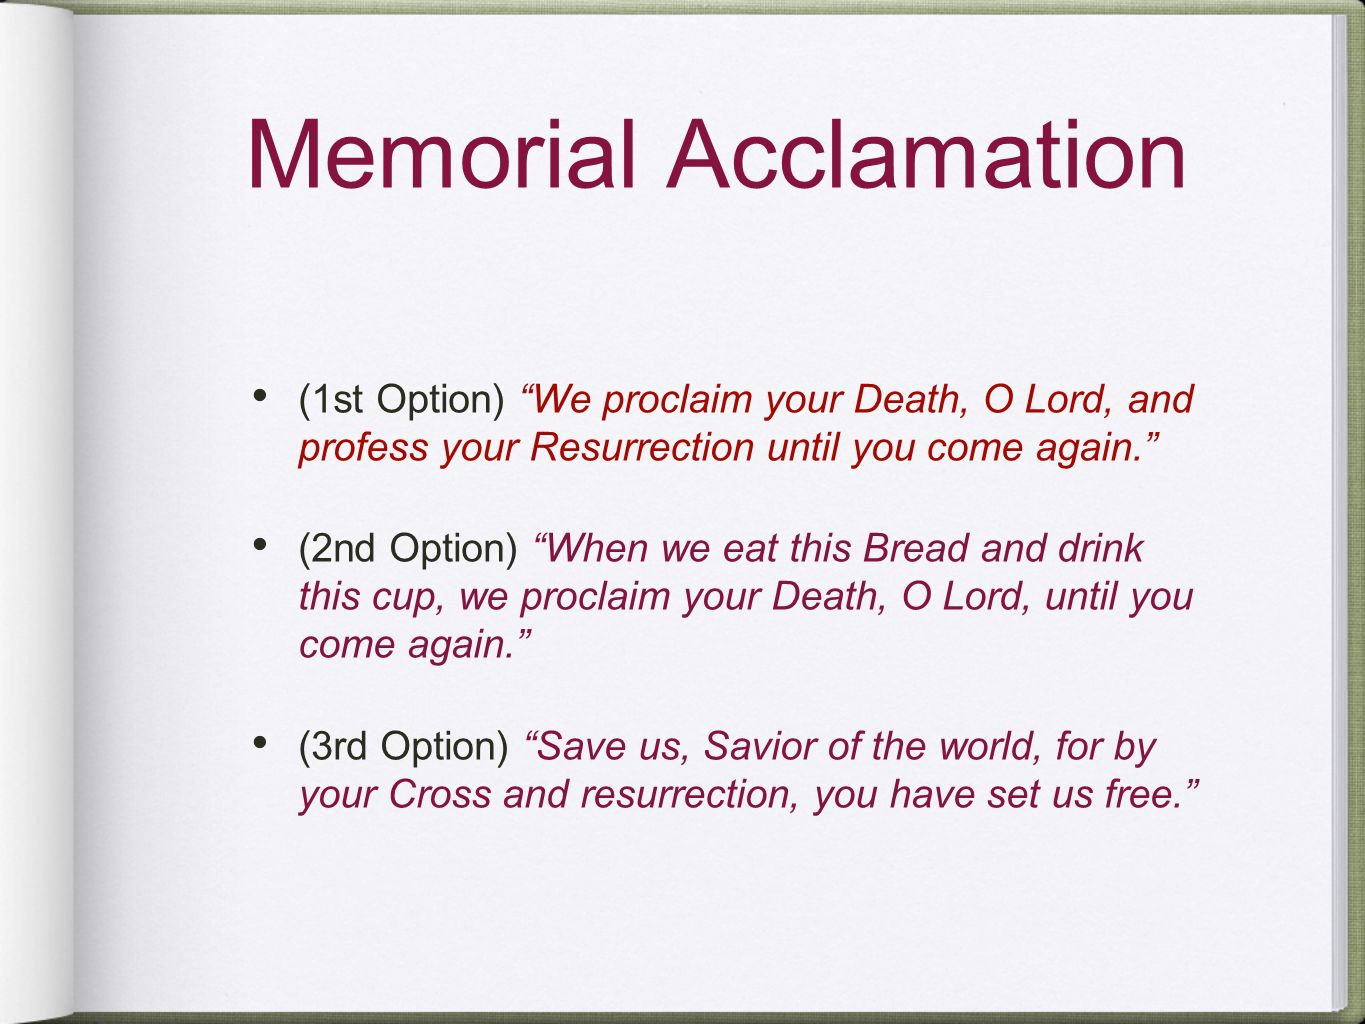 Memorial Acclamation (1st Option) We proclaim your Death, O Lord, and profess your Resurrection until you come again.